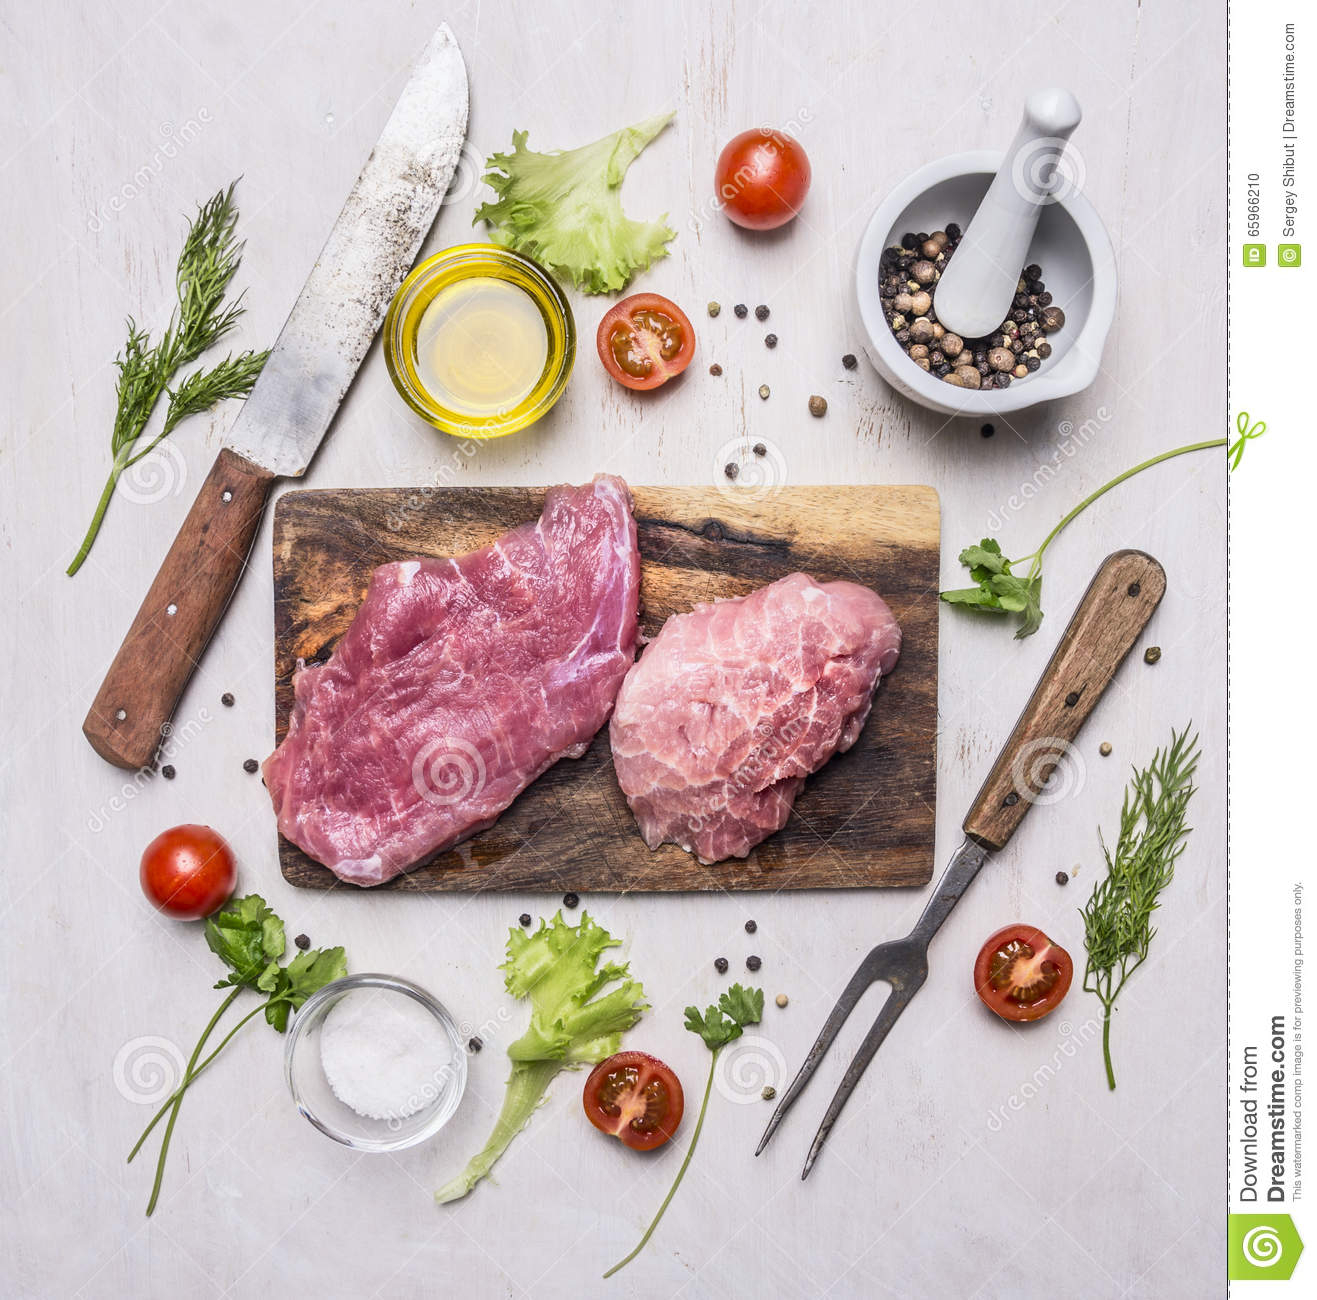 raw pork steak with vegetables and herbs meat knife and fork on a cutting board wooden rustic. Black Bedroom Furniture Sets. Home Design Ideas